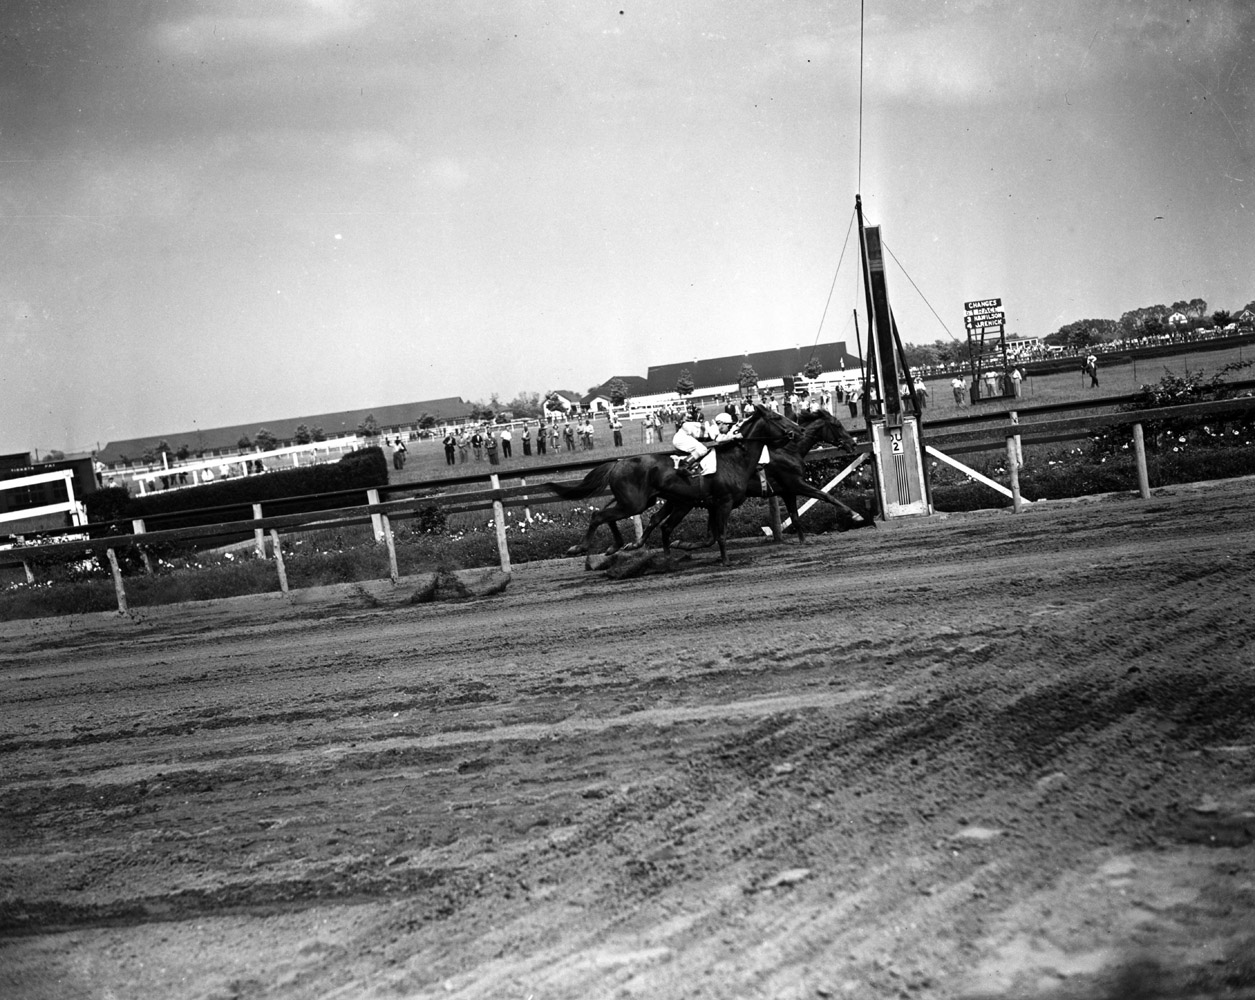 Gallorette (Job D. Jessop up) defeating Stymie in the 1946 Brooklyn Handicap at Aqueduct (Keeneland Library Morgan Collection/Museum Collection)